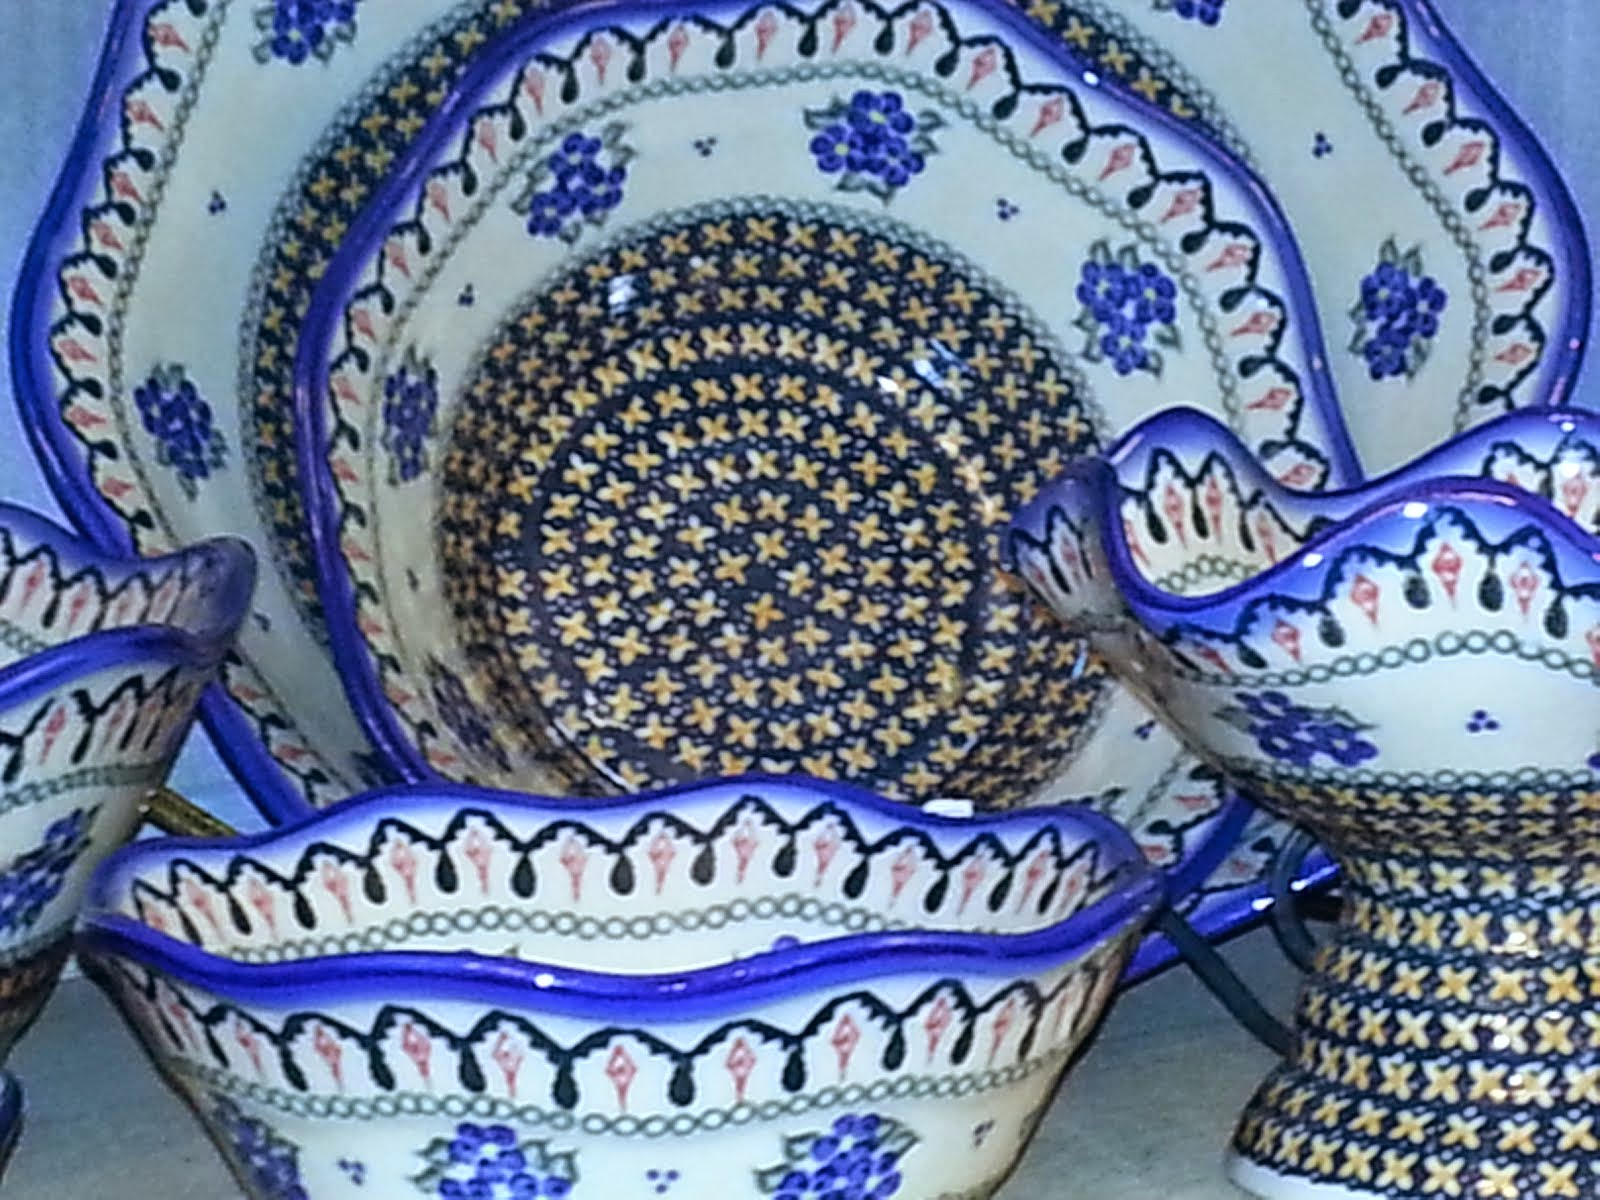 Polish Pottery At The Soap Factory